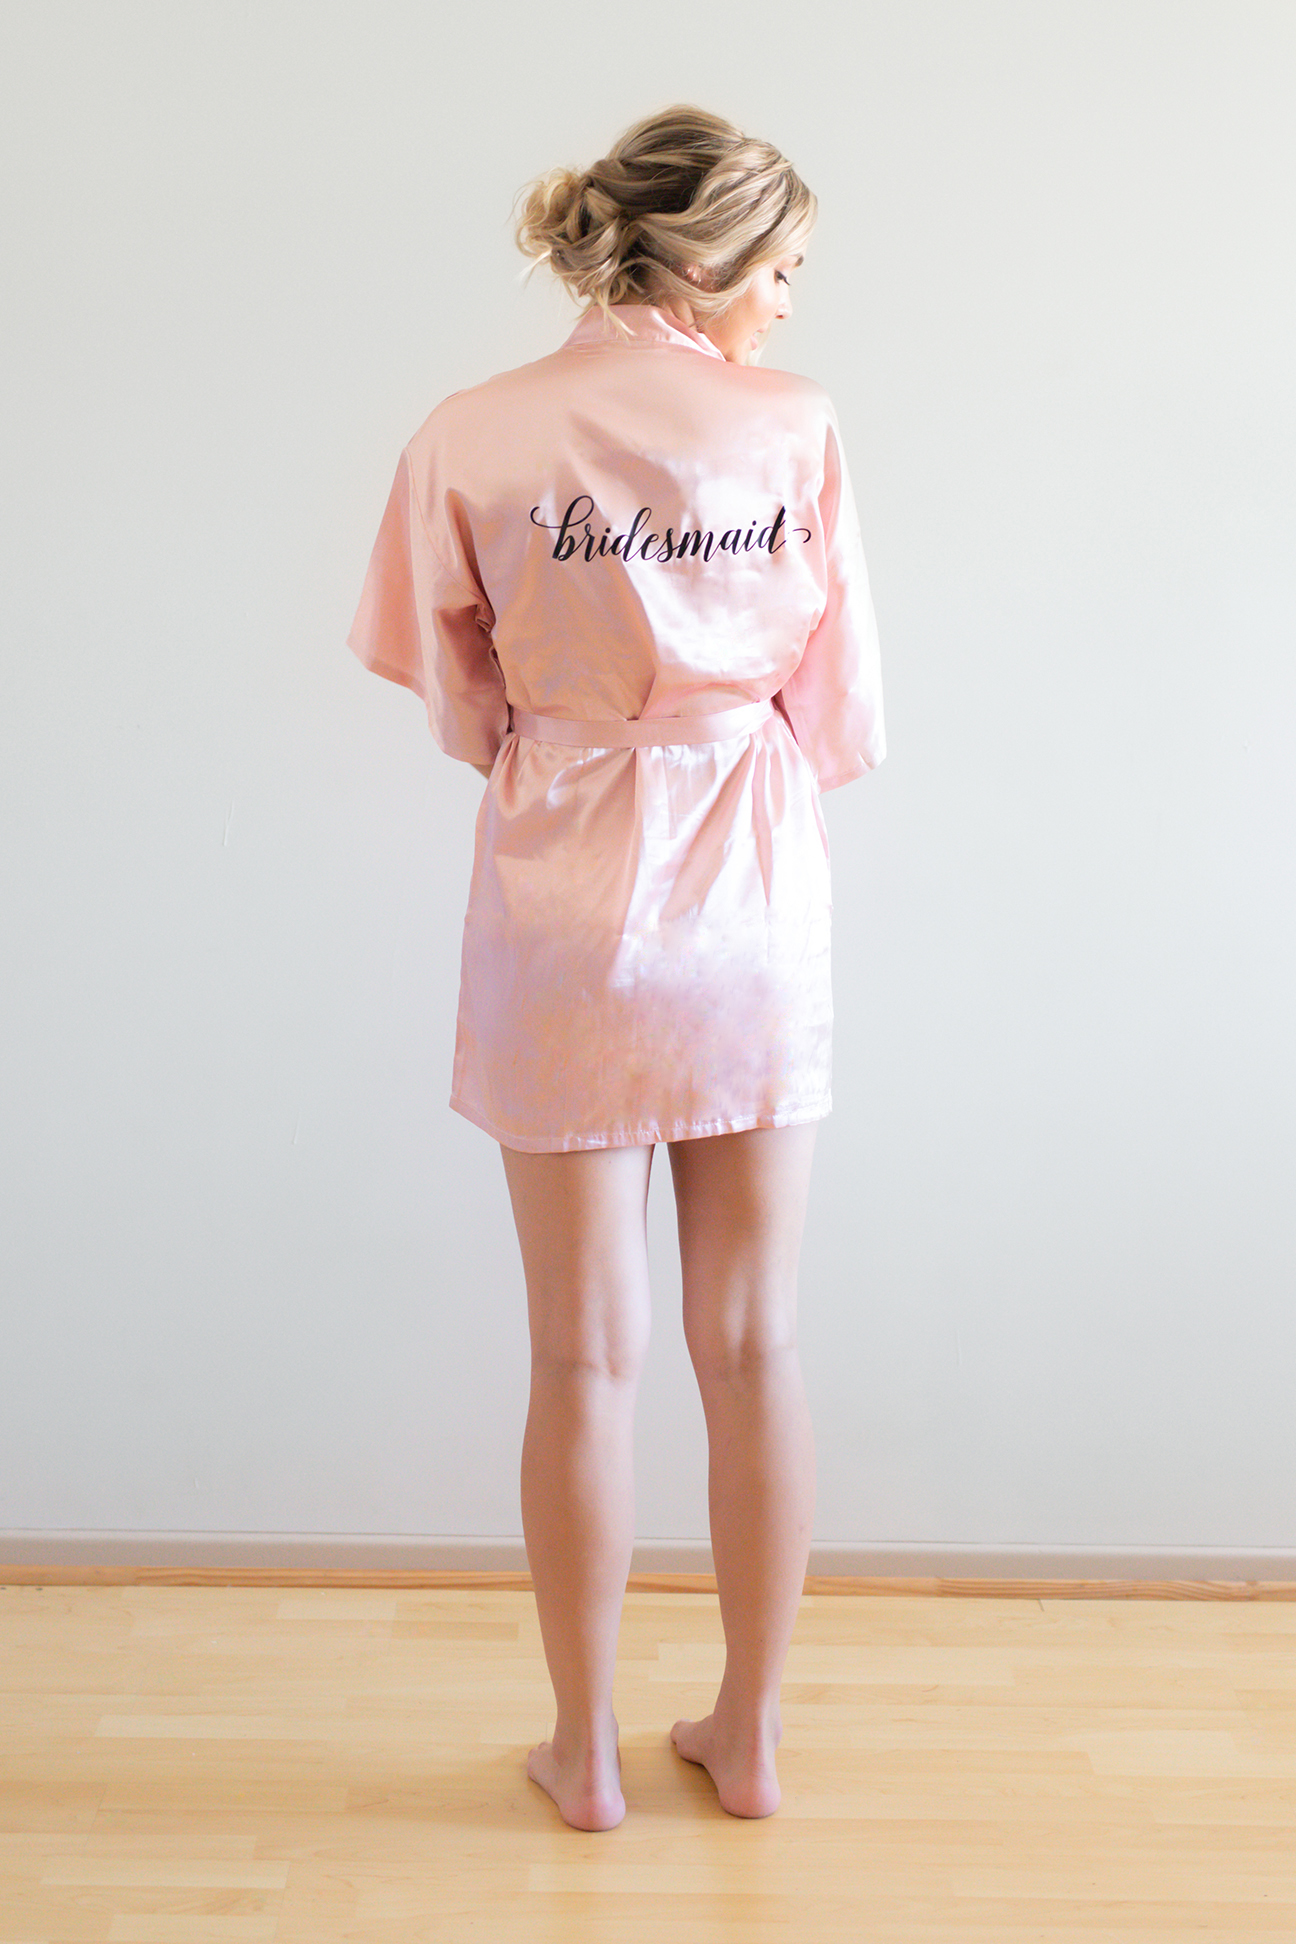 Evie Bridesmaid Robes Printed Text Black Font